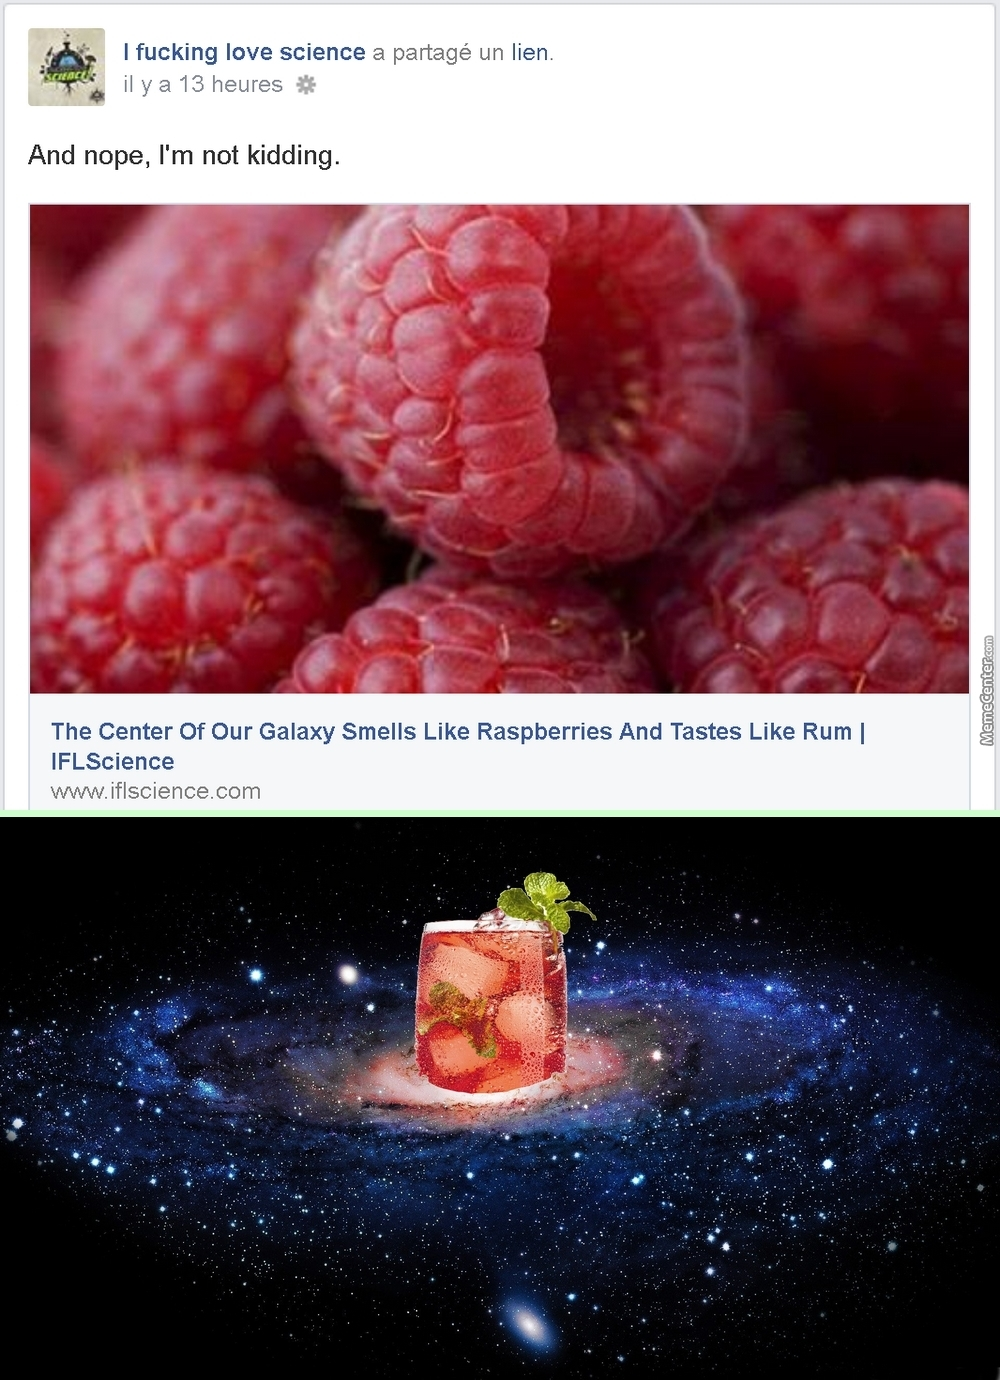 In Other News, The Center Of The Galaxy Is A Glass Of Punch.